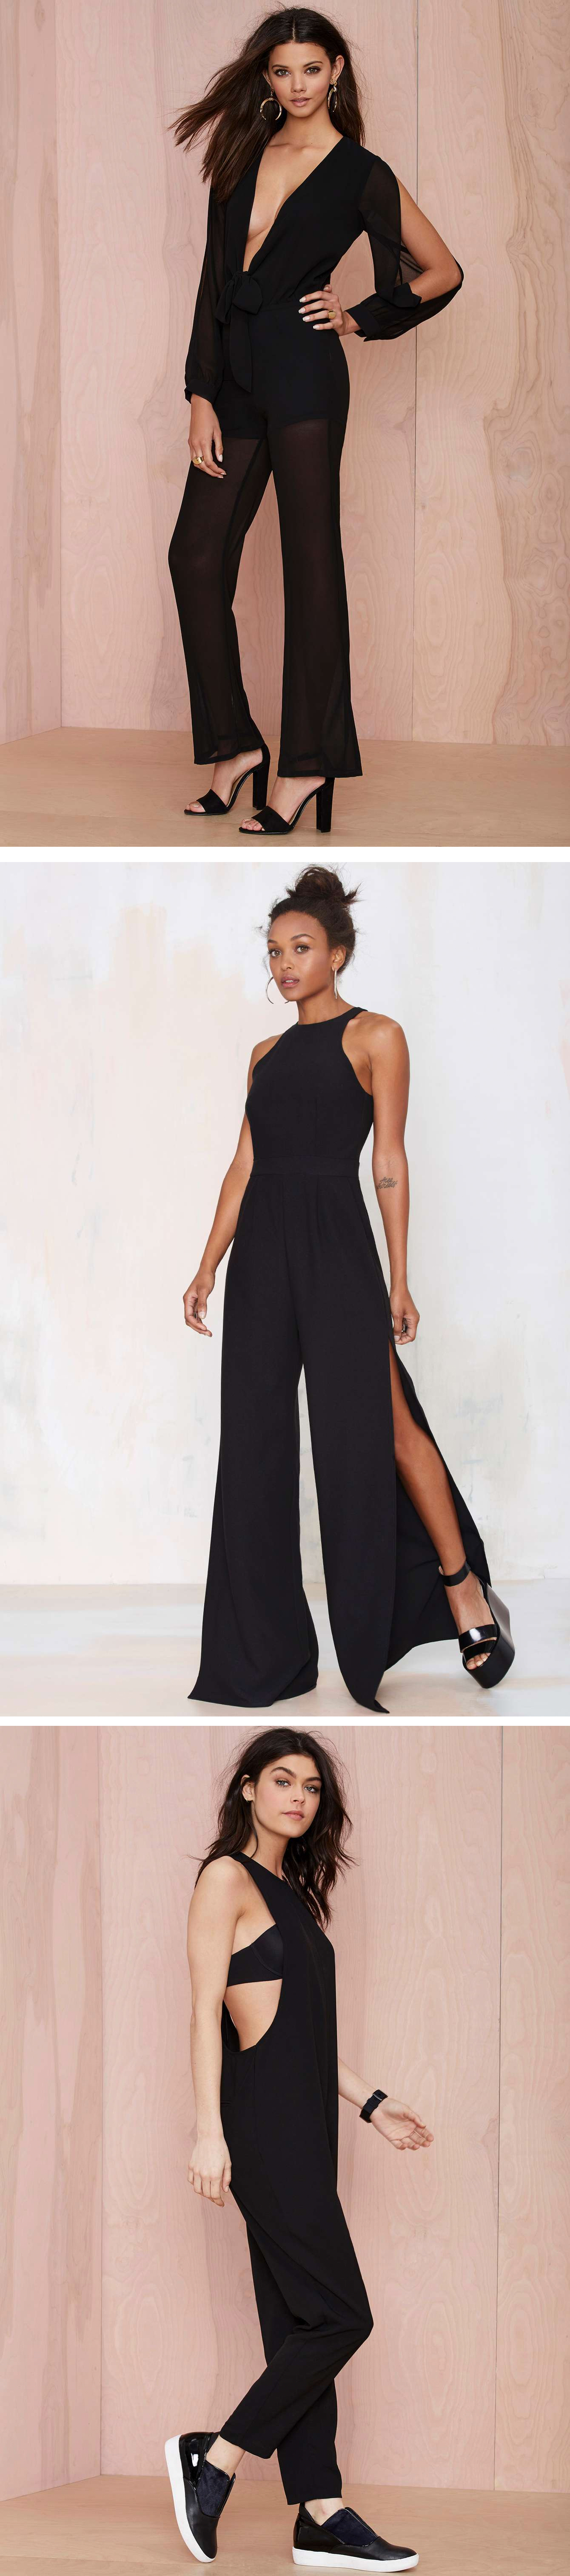 Stay sleek in a black jumpsuit nastygal ugly fashion pinterest